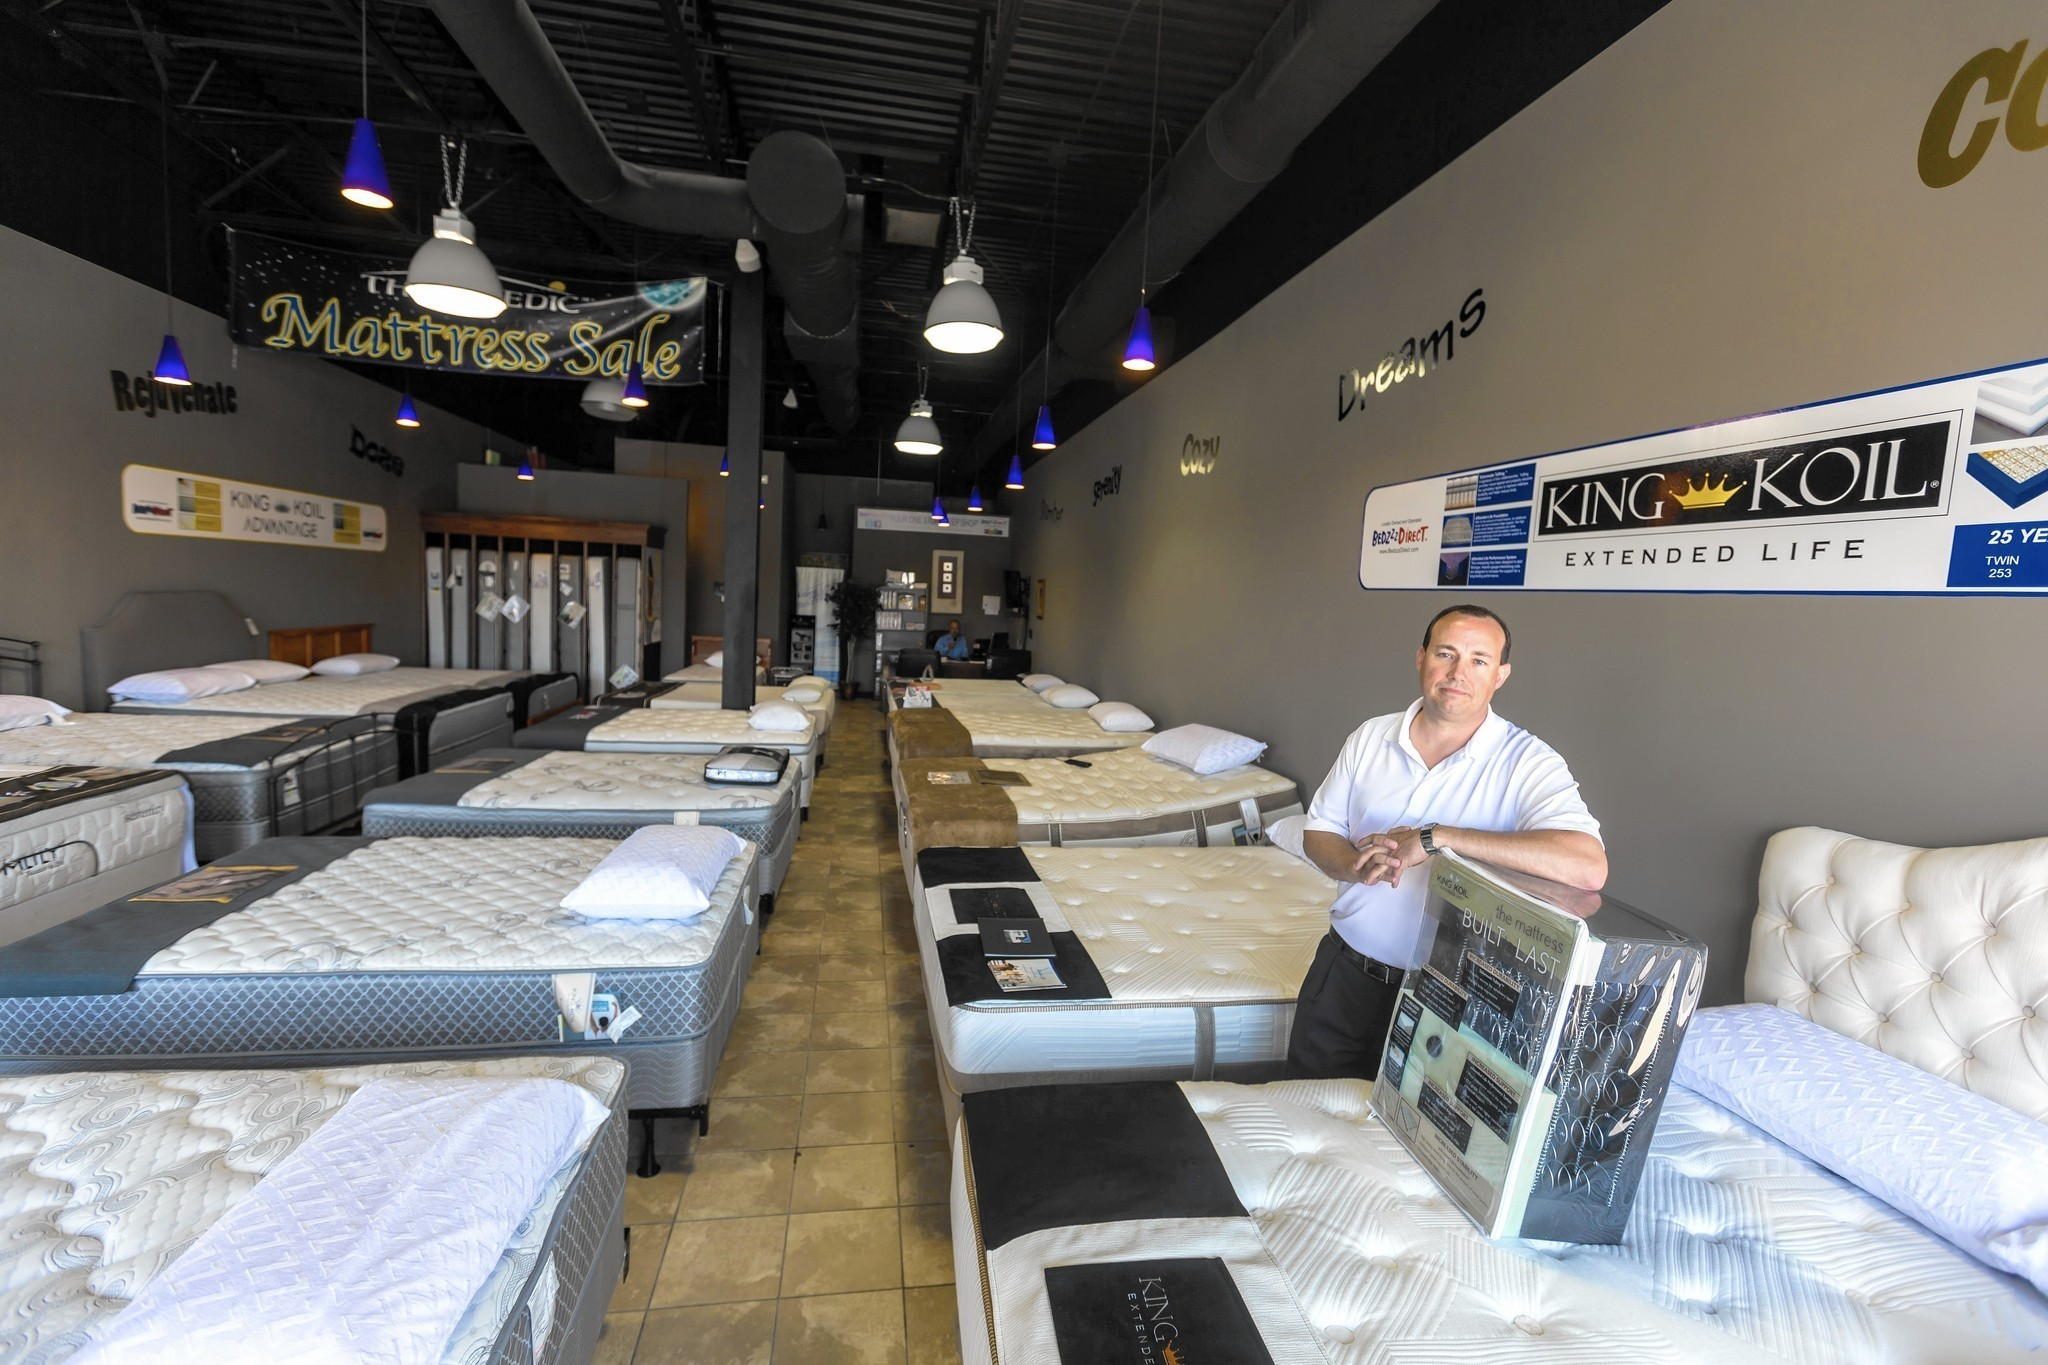 Mattress Store Explosion Leaves No Time To Sleep On The